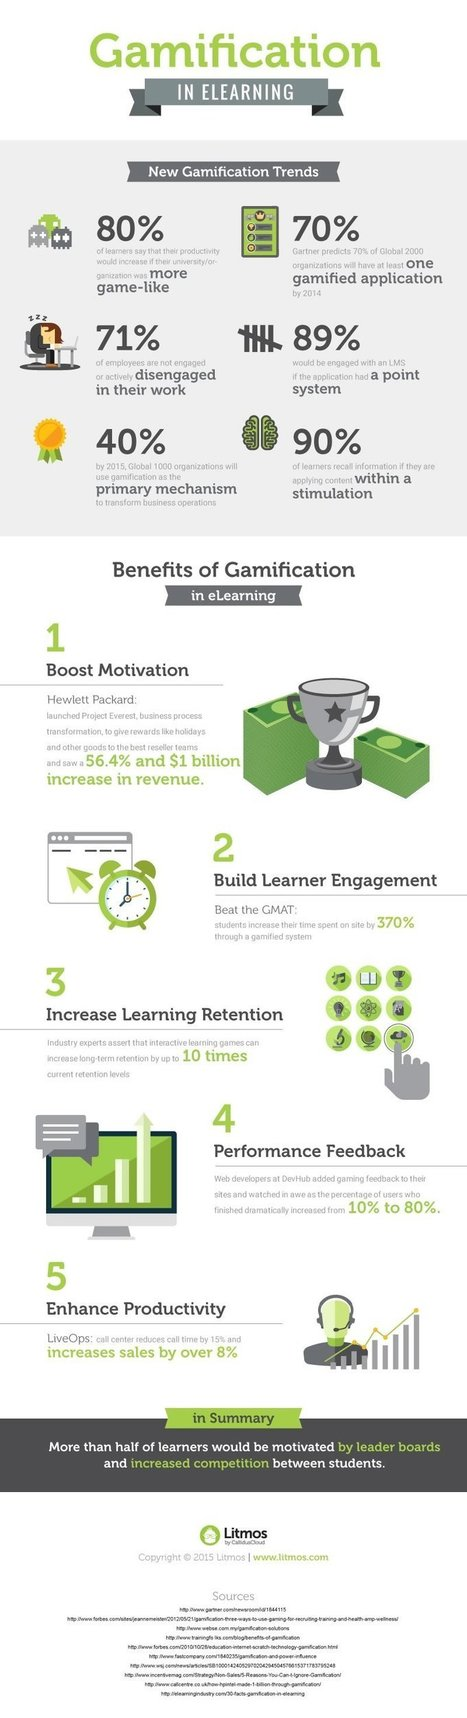 Gamification in eLearning Infographic - e-Learning Infographics | 21st C Learning | Scoop.it